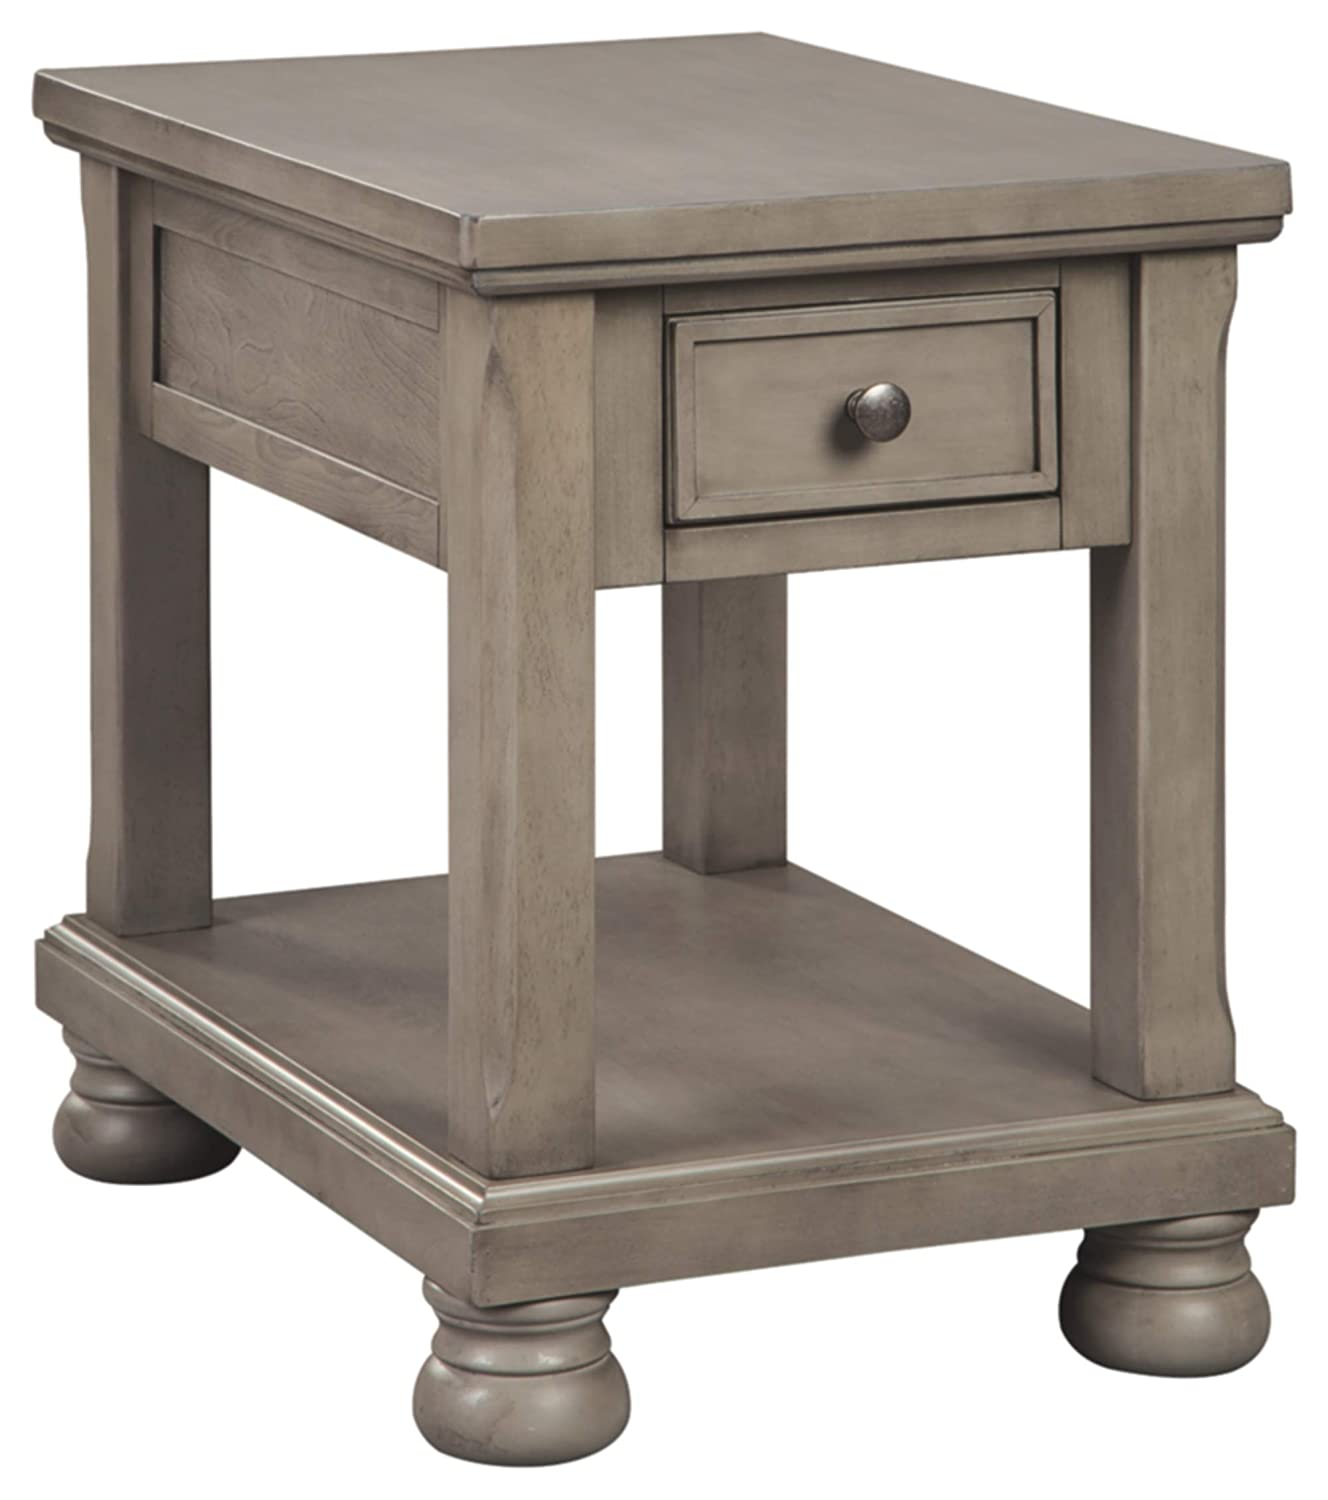 Signature Design by Ashley T733-3 Lettner Rectangular End Table, Gray